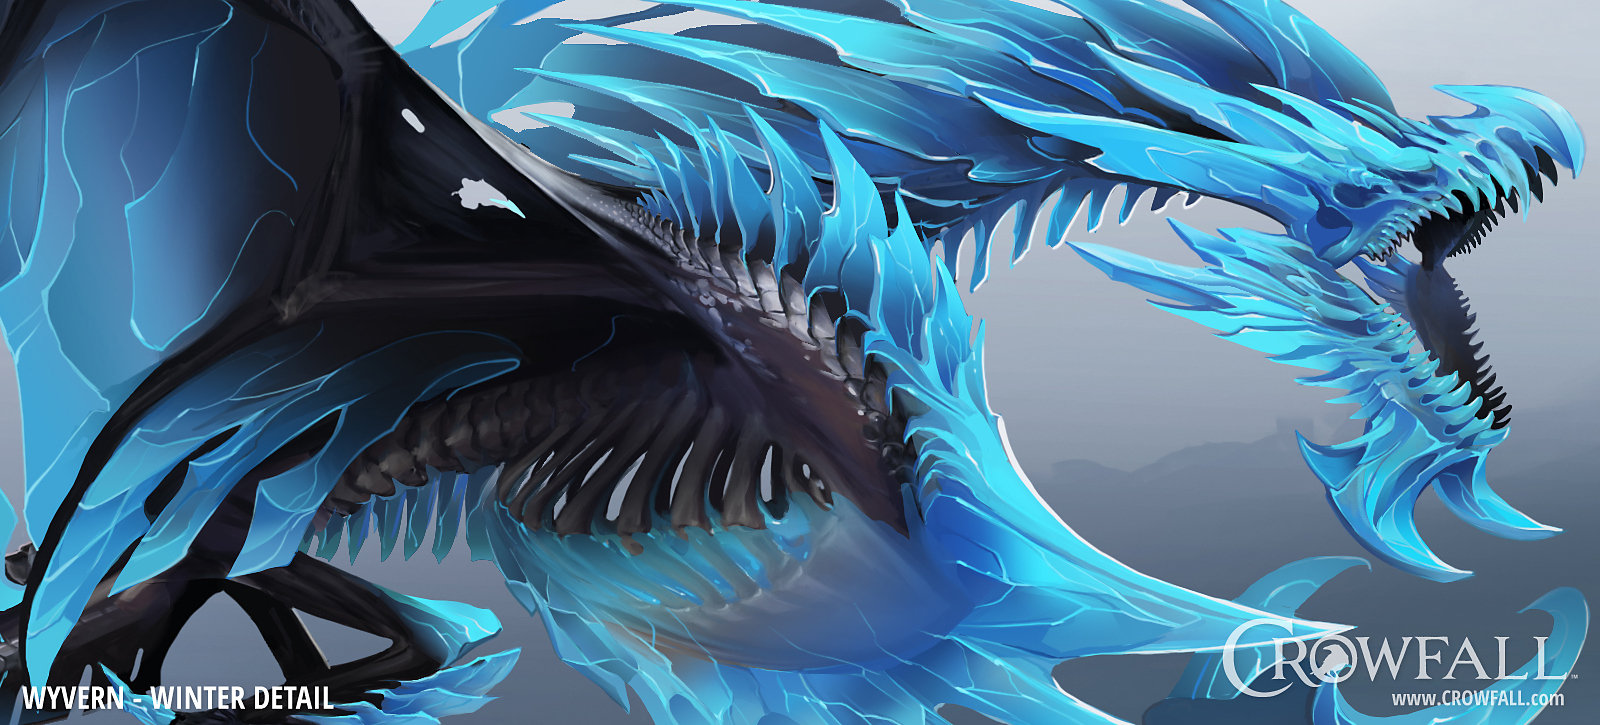 Wyvern Detailed Winter Concept